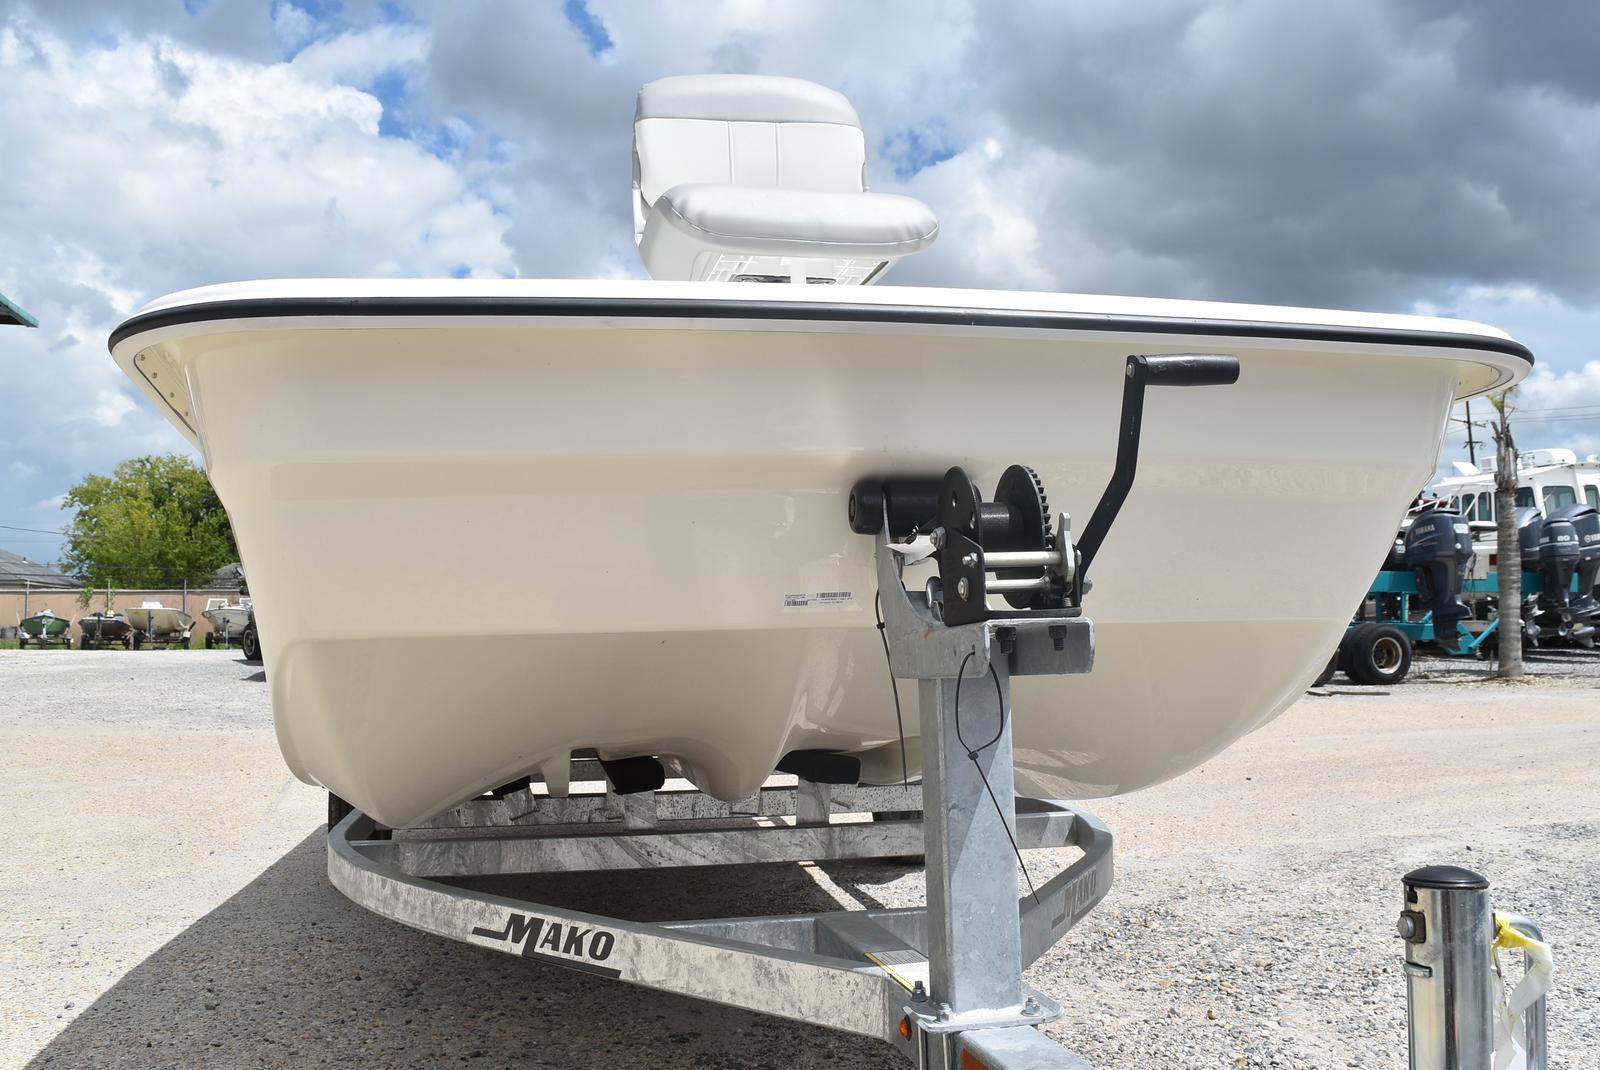 2020 Mako boat for sale, model of the boat is Pro Skiff 17, 75 ELPT & Image # 324 of 702